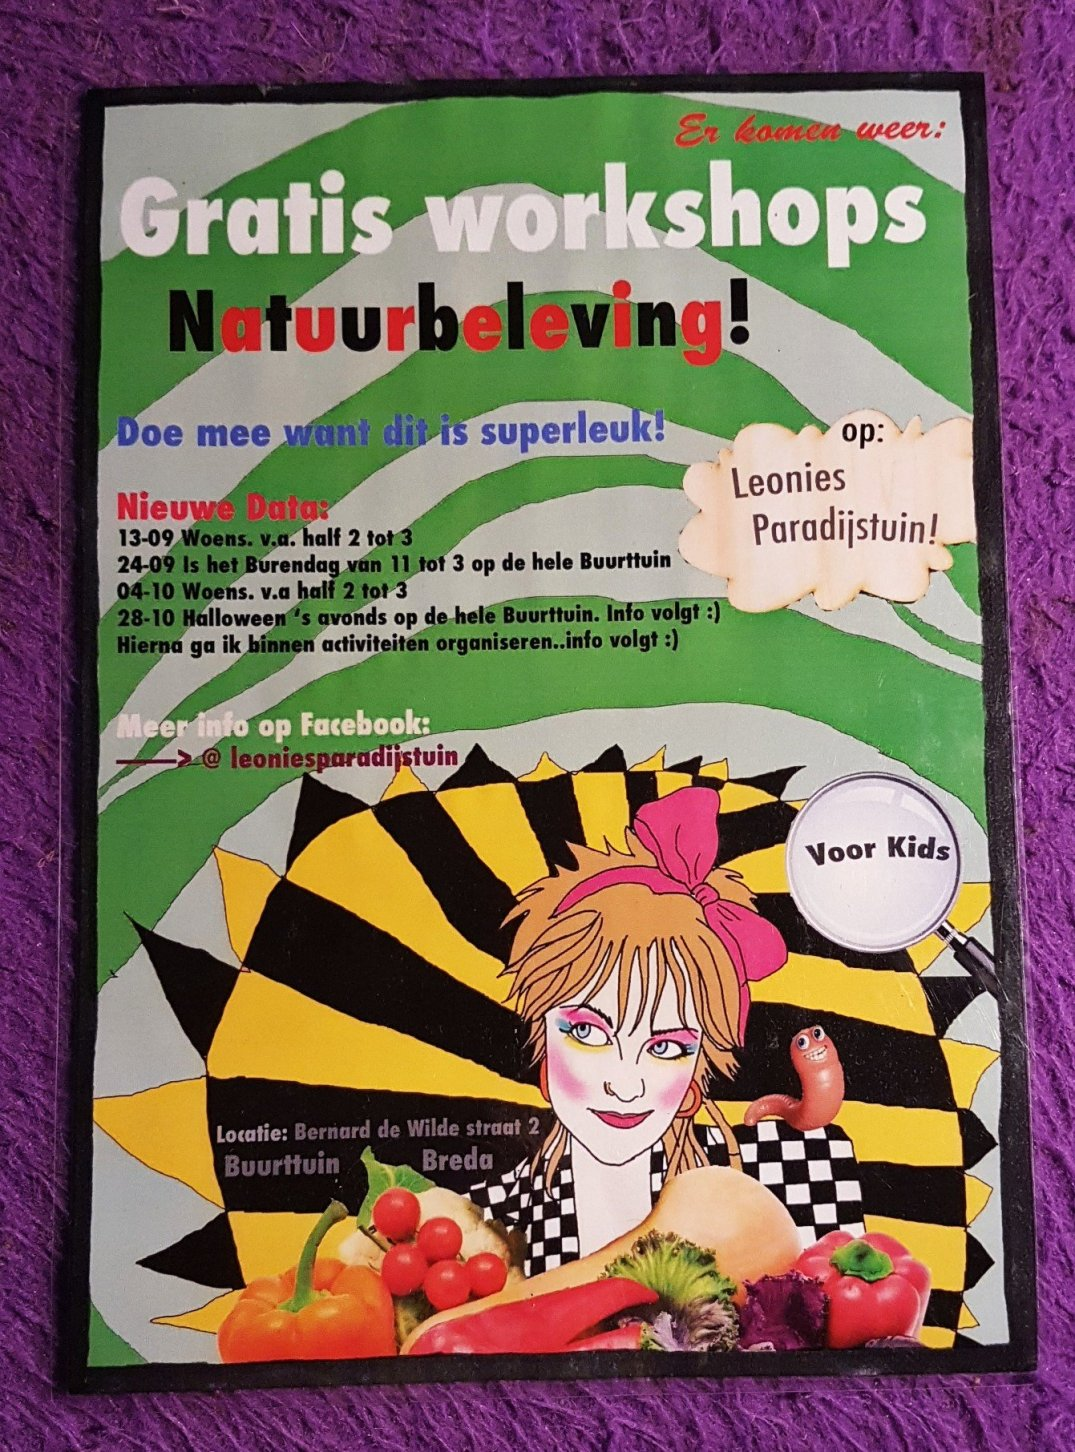 Gratis workshops